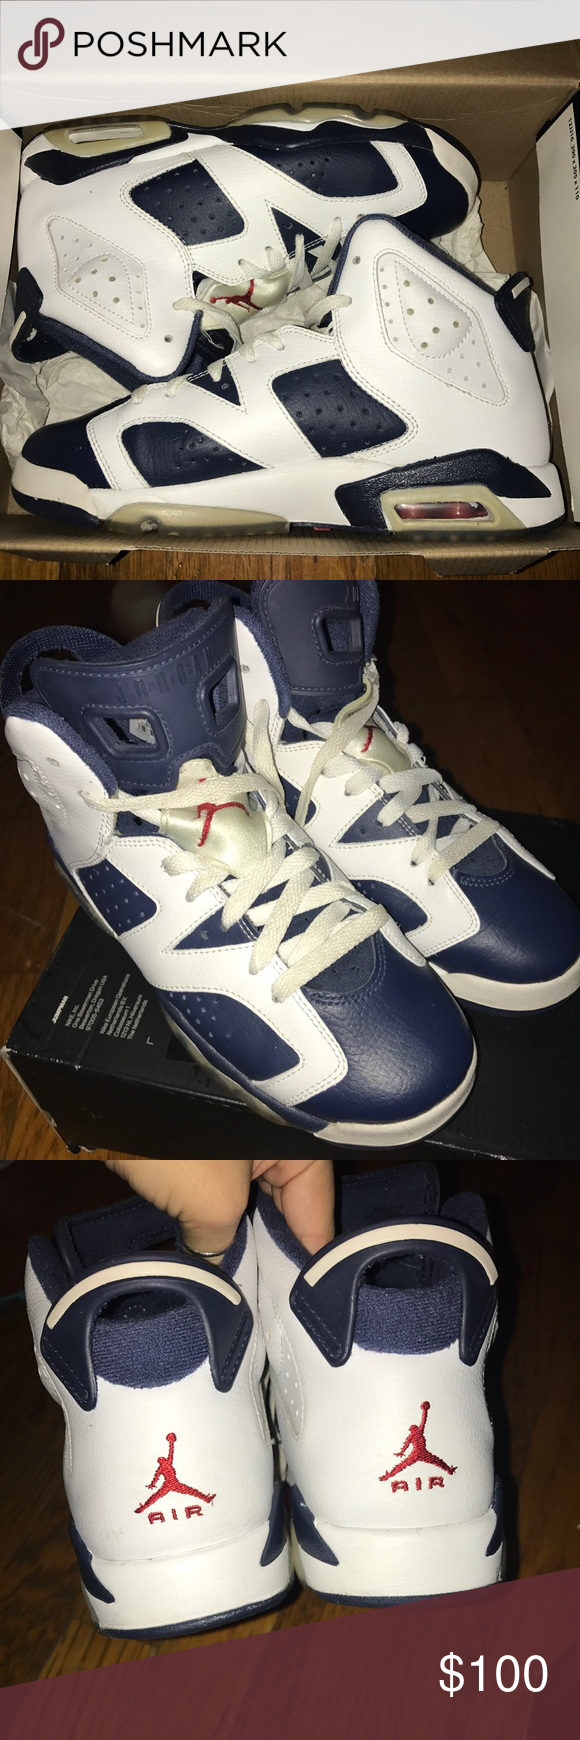 1823e94c09698a ... where to buy air jordan 6 retro olympic worn a couple of times only  flaw is